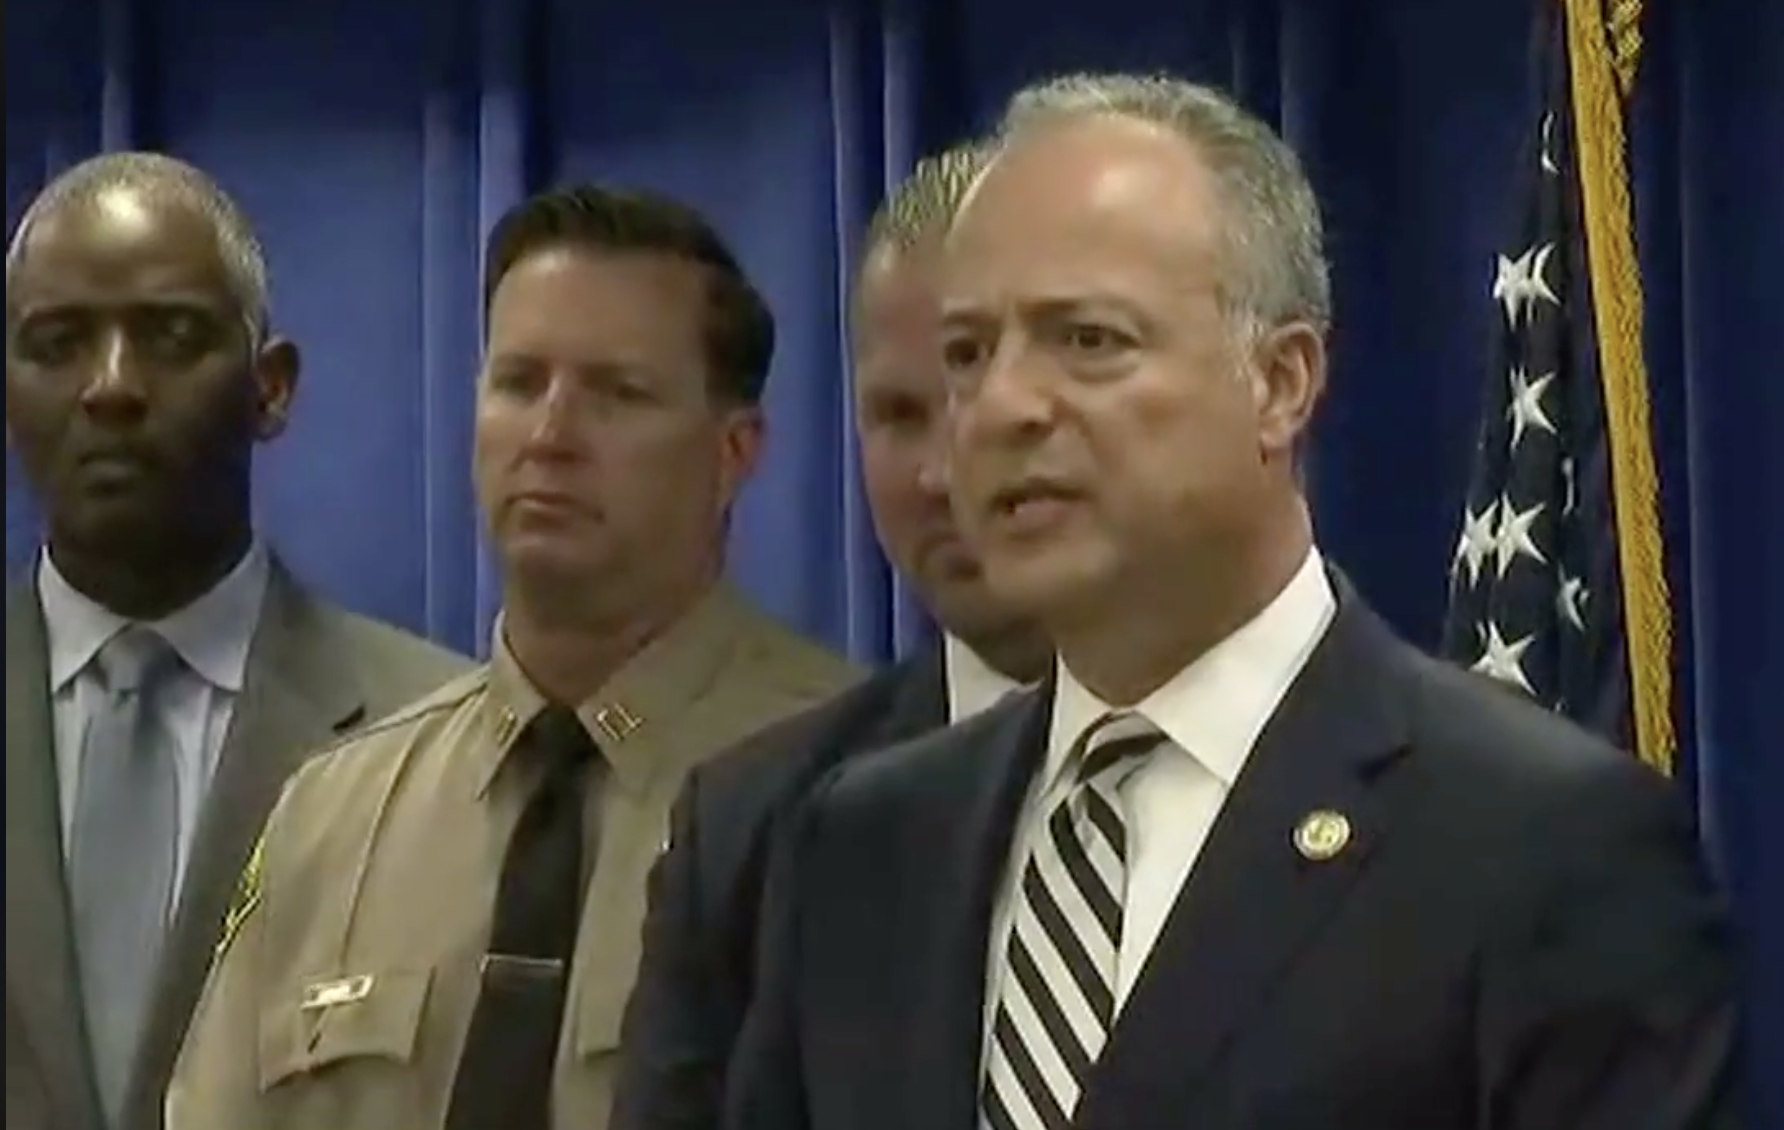 U.S. Attorney Nick Hanna spoke at a press conference about a foiled attack in Long Beach, California, on Monday.